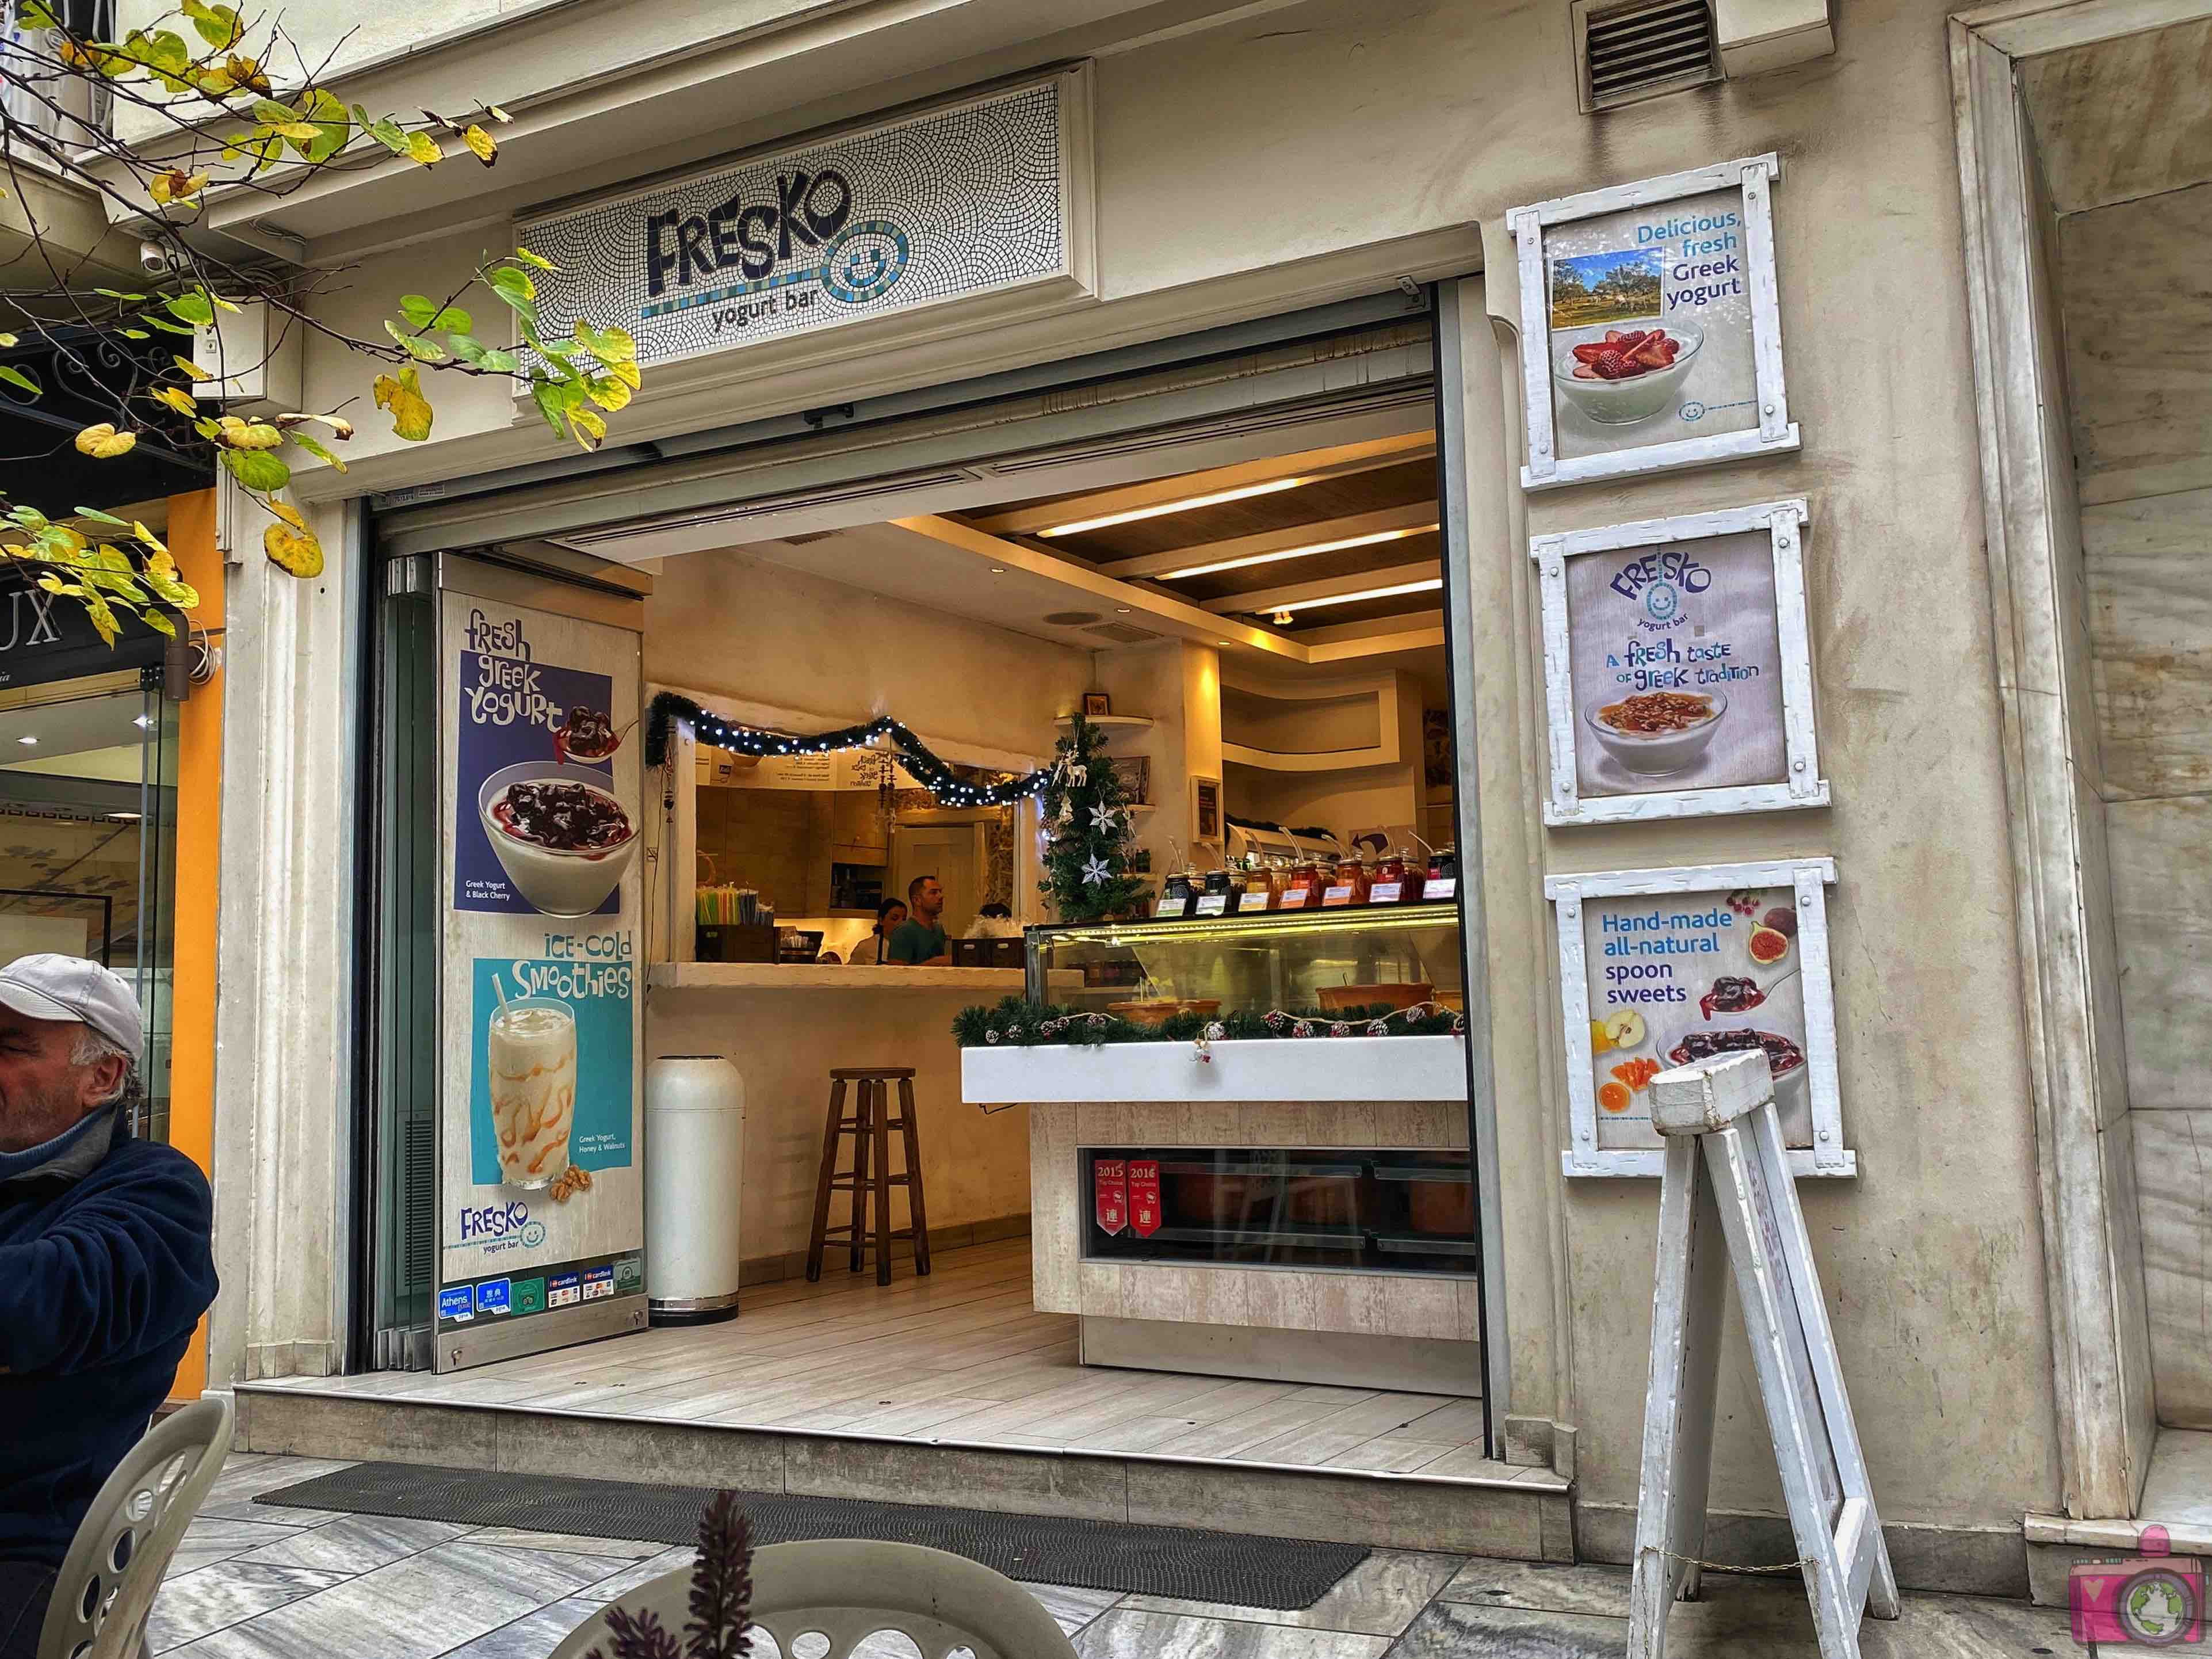 Dove mangiare ad Atene Fresco Yogurt Bar